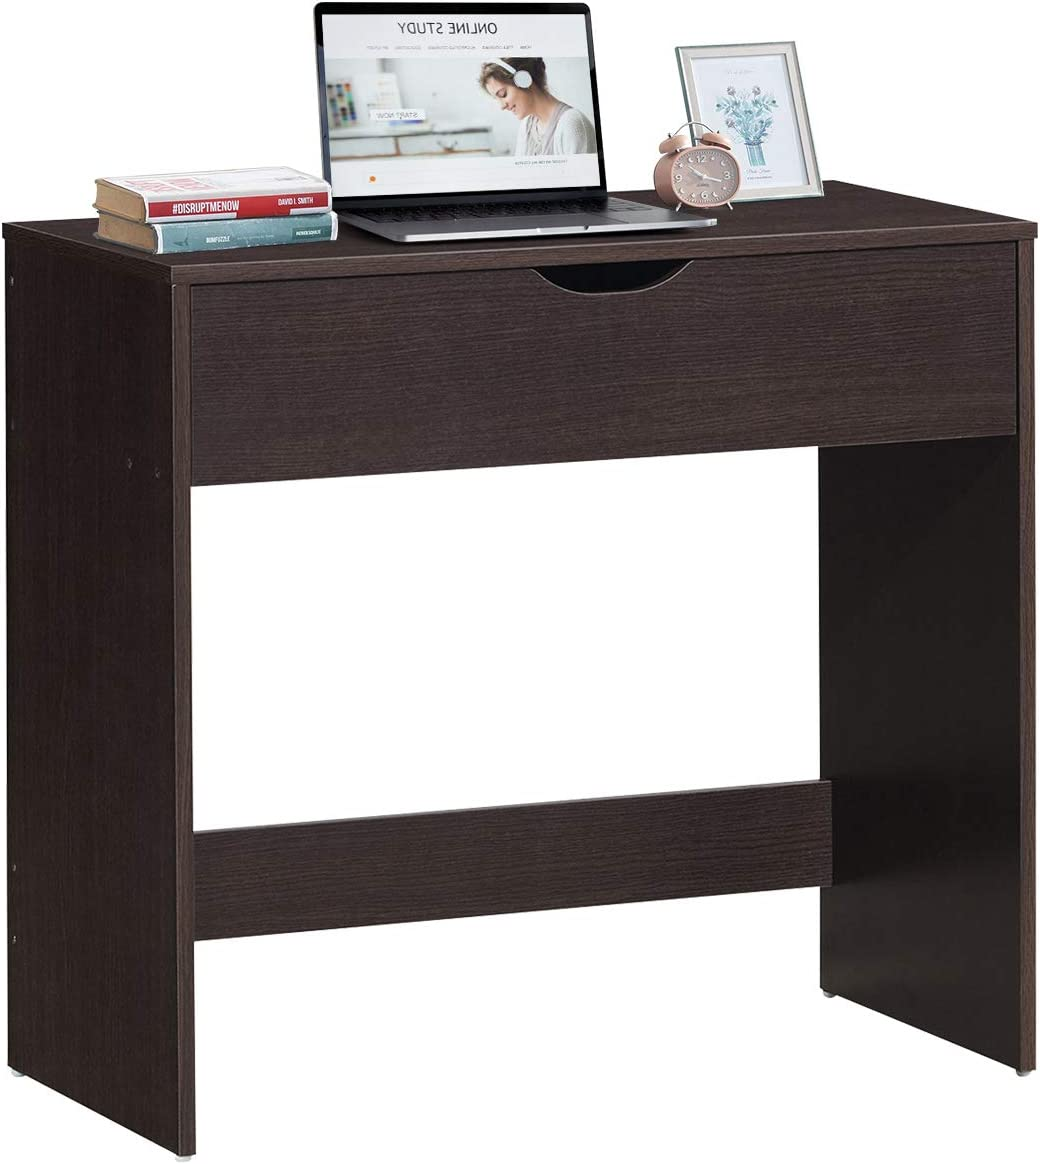 Tangkula Wood Writing Desk, Computer Desk with Drawer, Small Desk for Student, Wood Study Desk for Kids Espresso